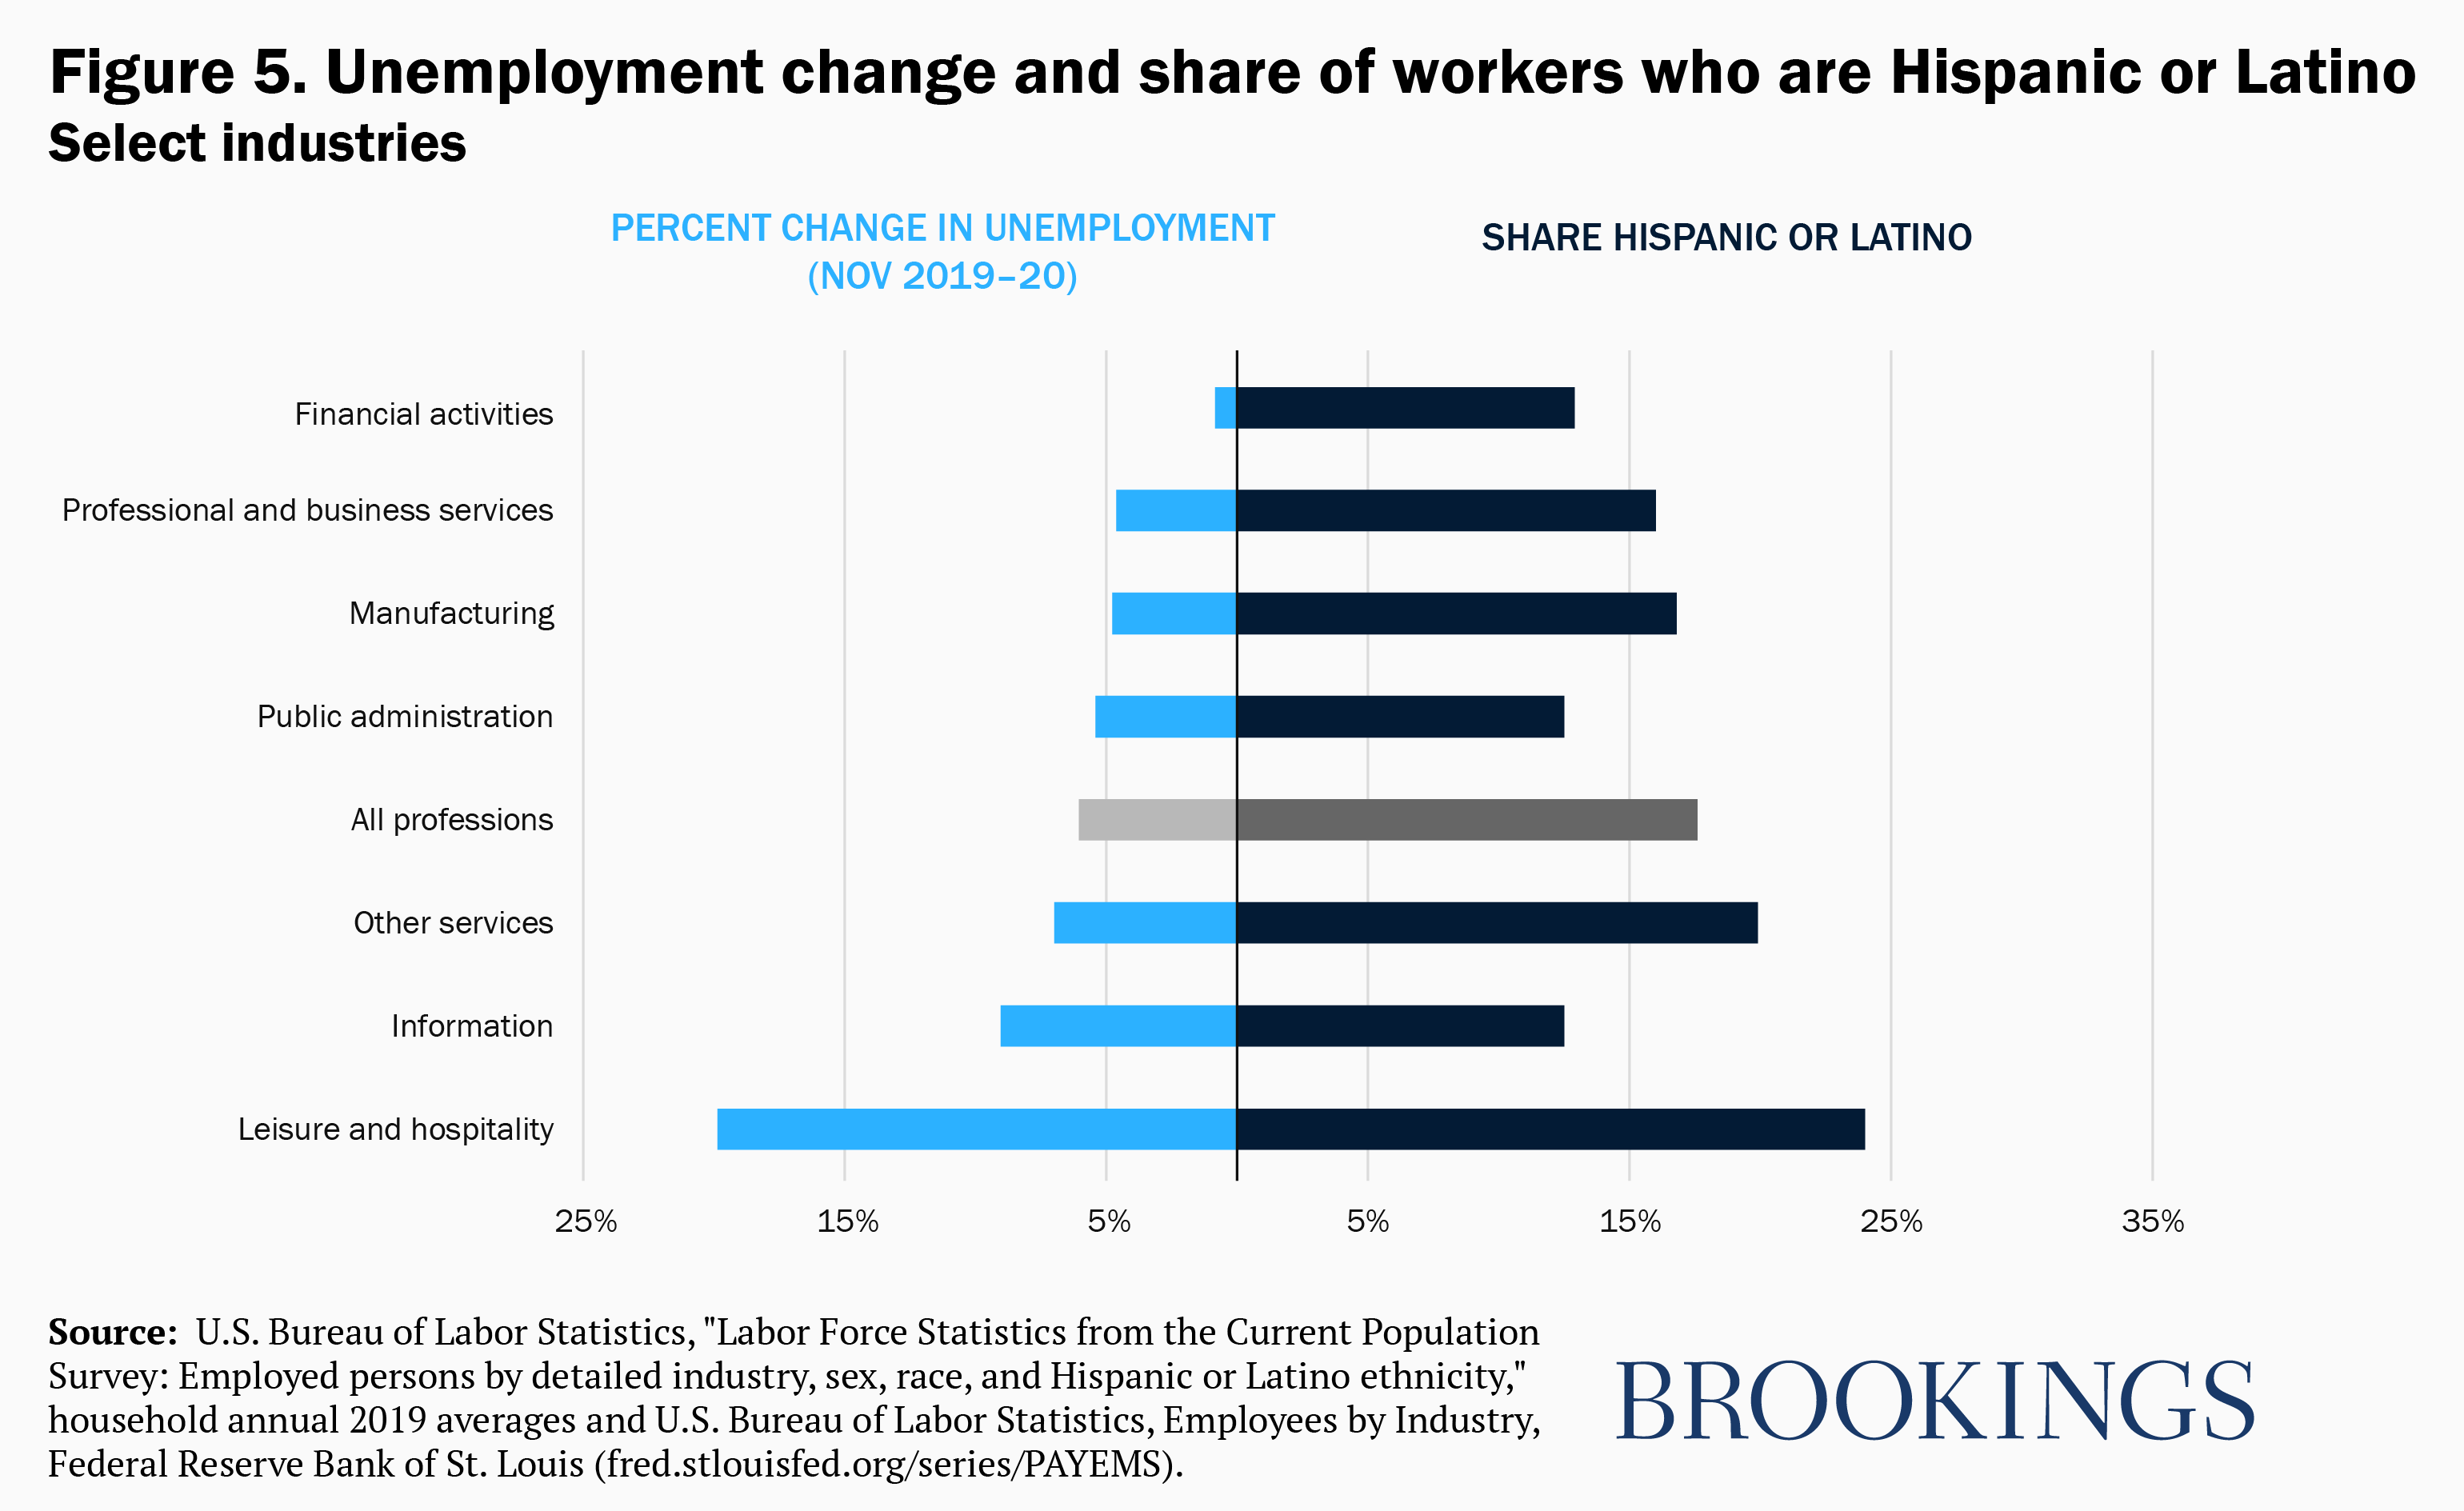 Unemployment change and share of workers who are Hispanic or Latino, select industries